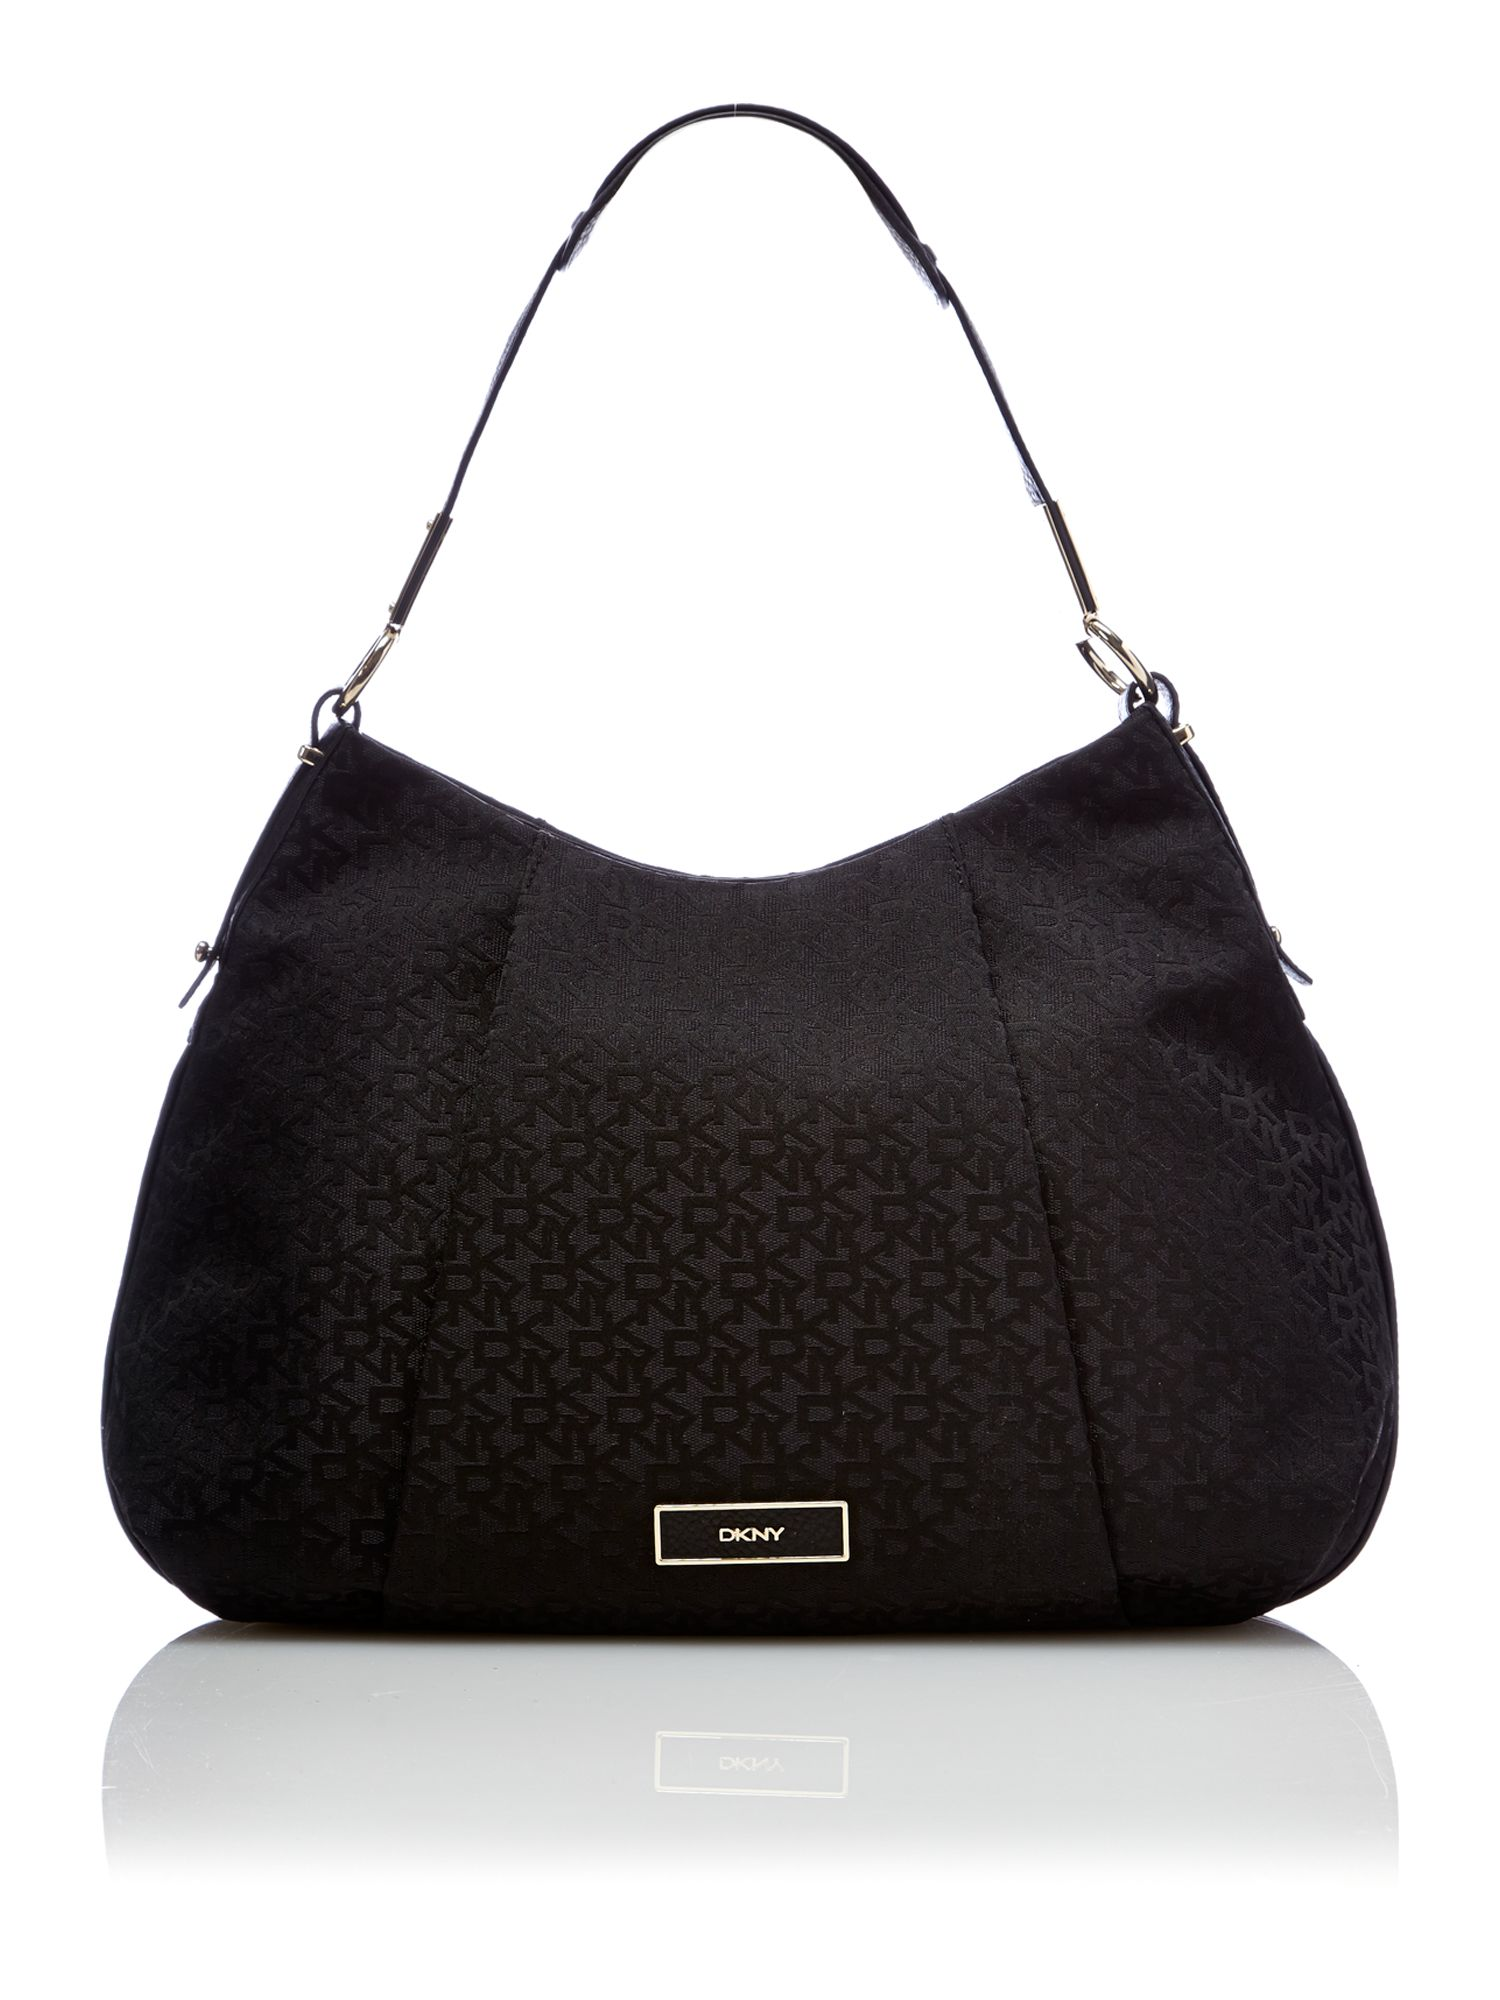 Crosby black hobo bag